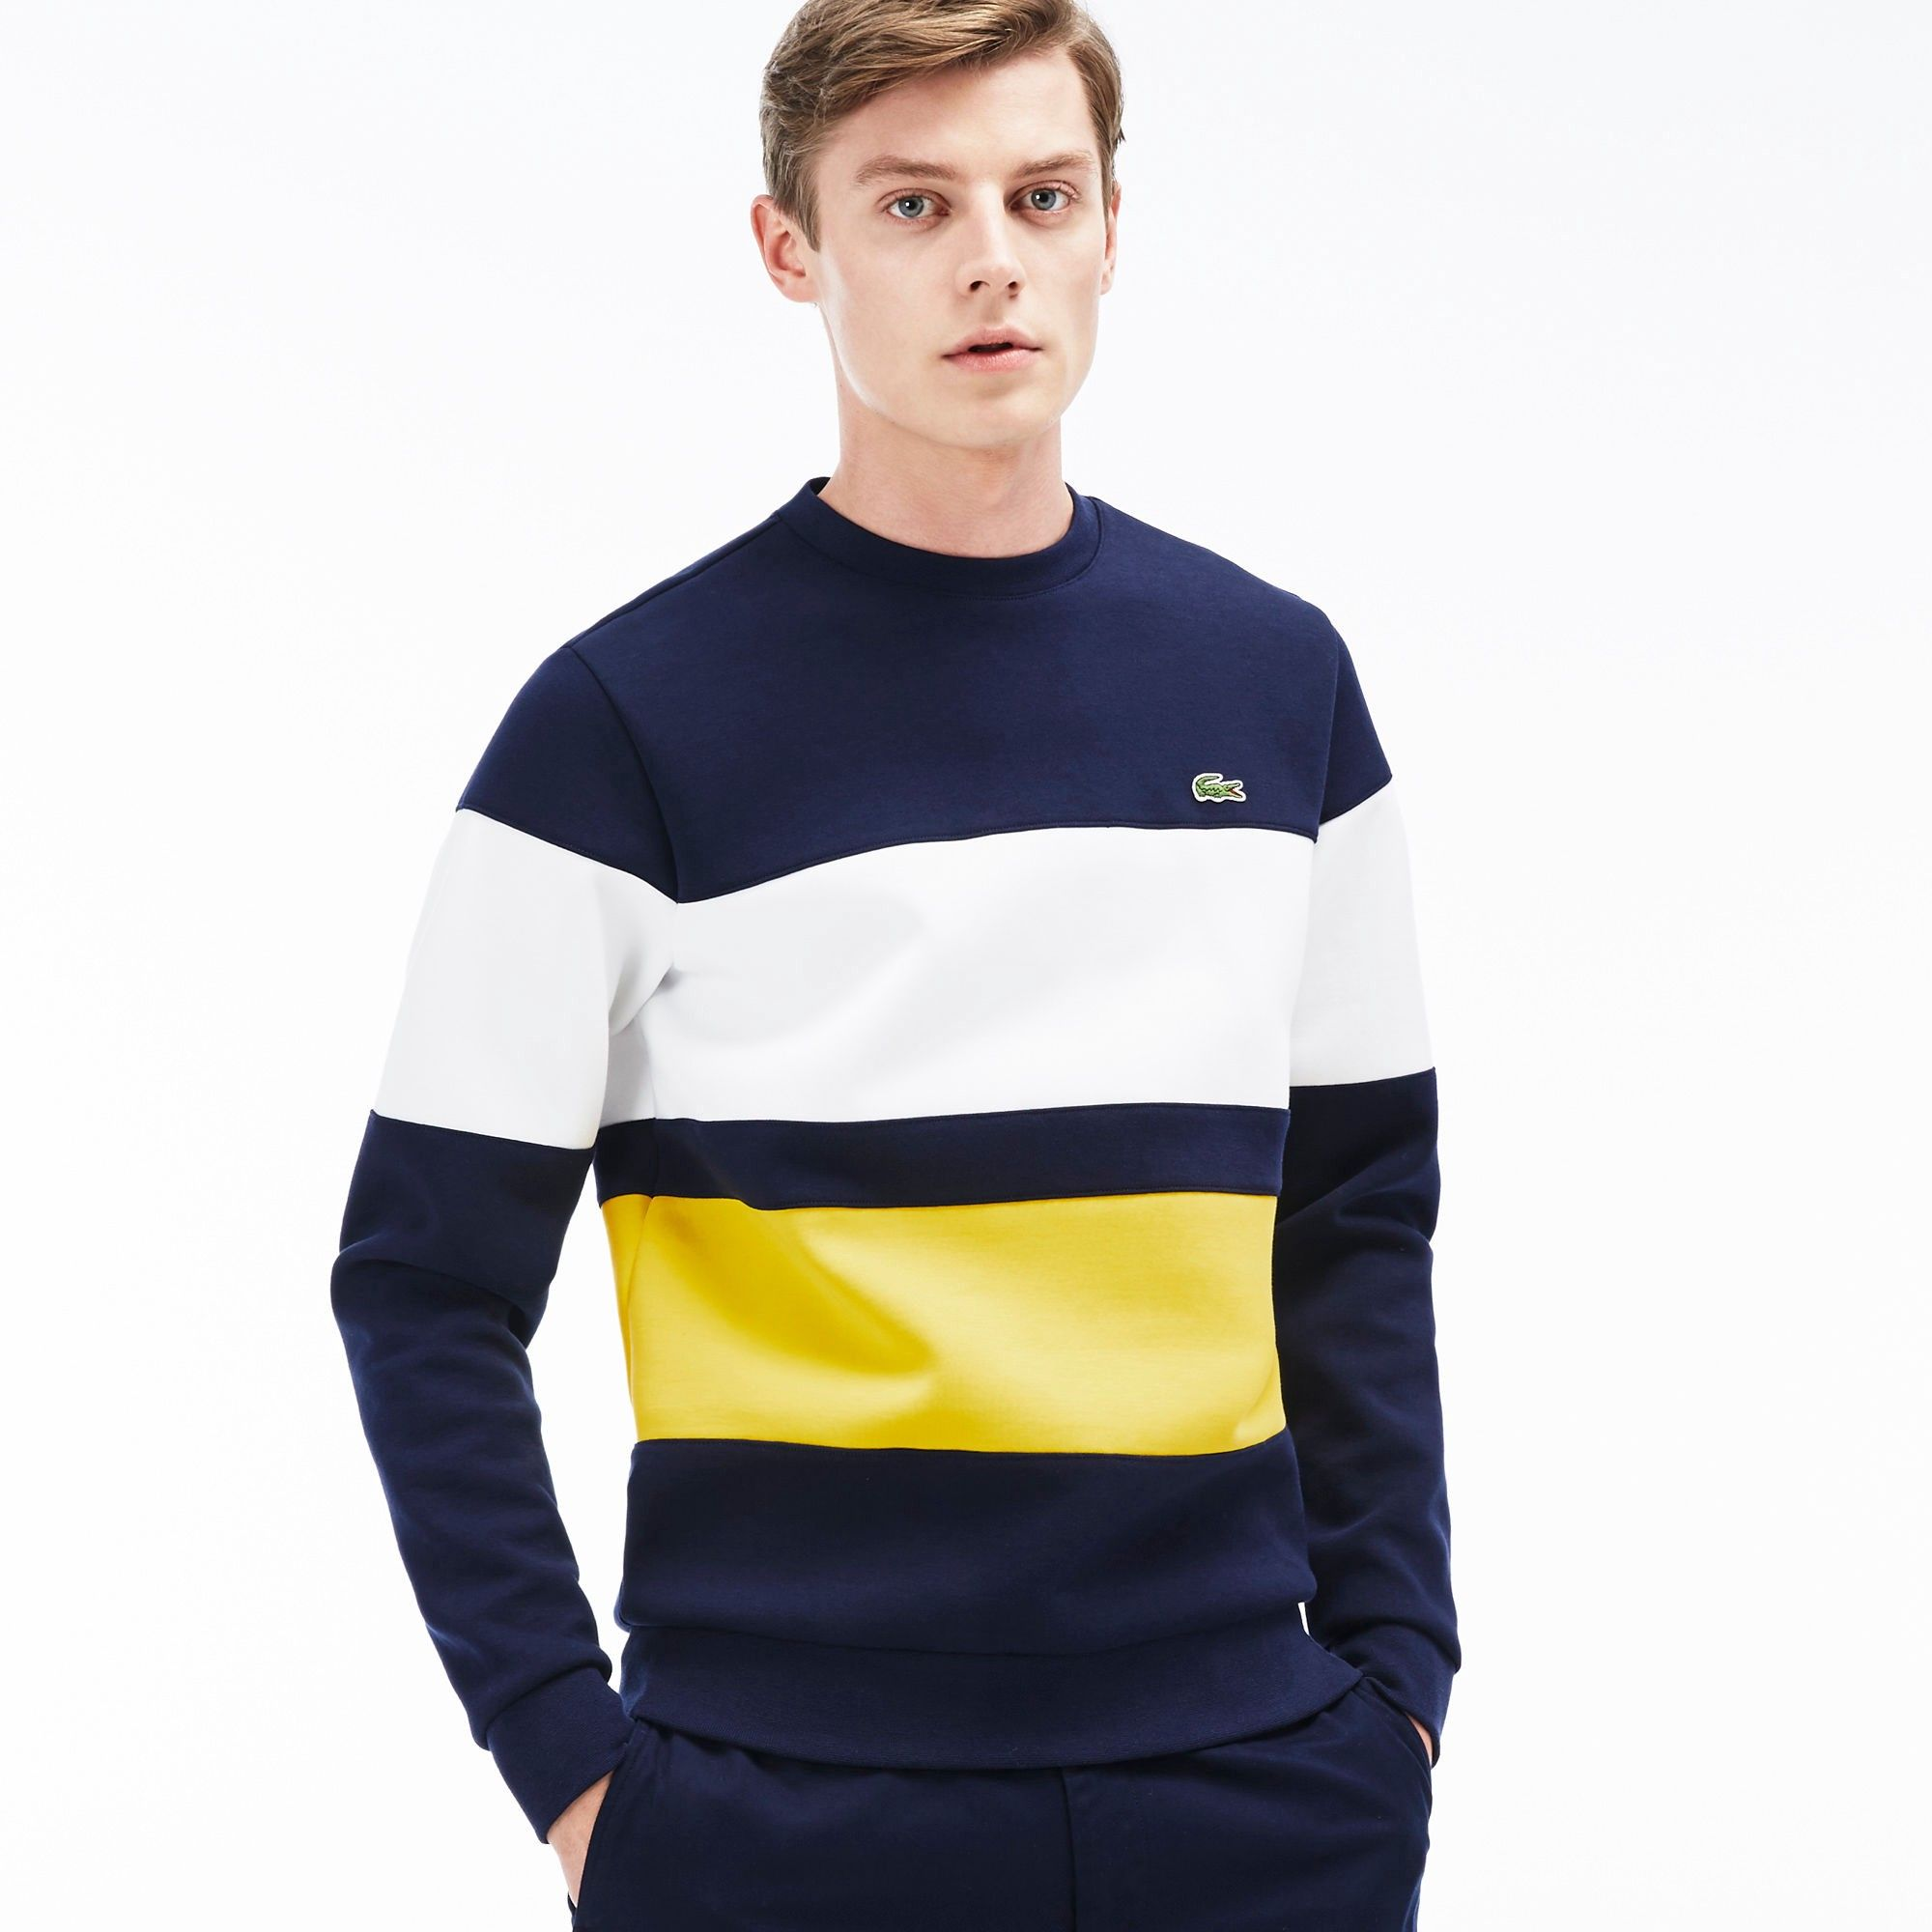 Lacoste Mens Color Block Fleece Sweatshirt  Navy Bluewhite Sunny #Lacoste